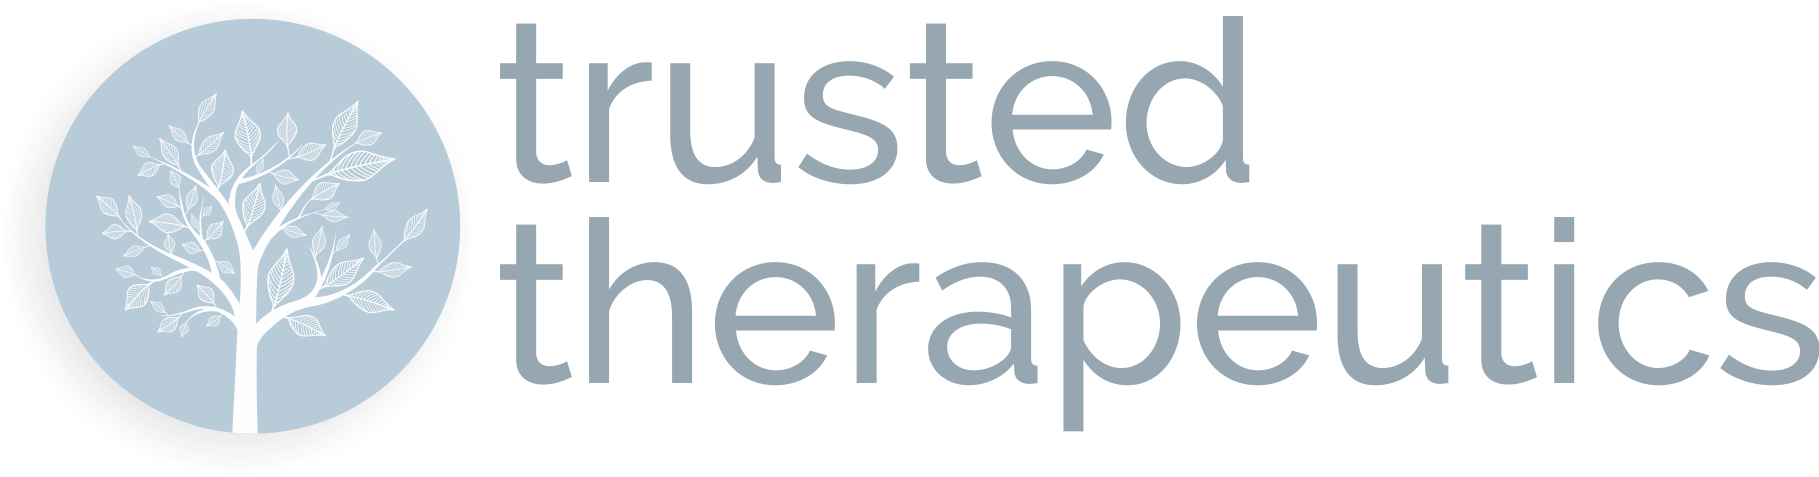 Trusted Therapeutics